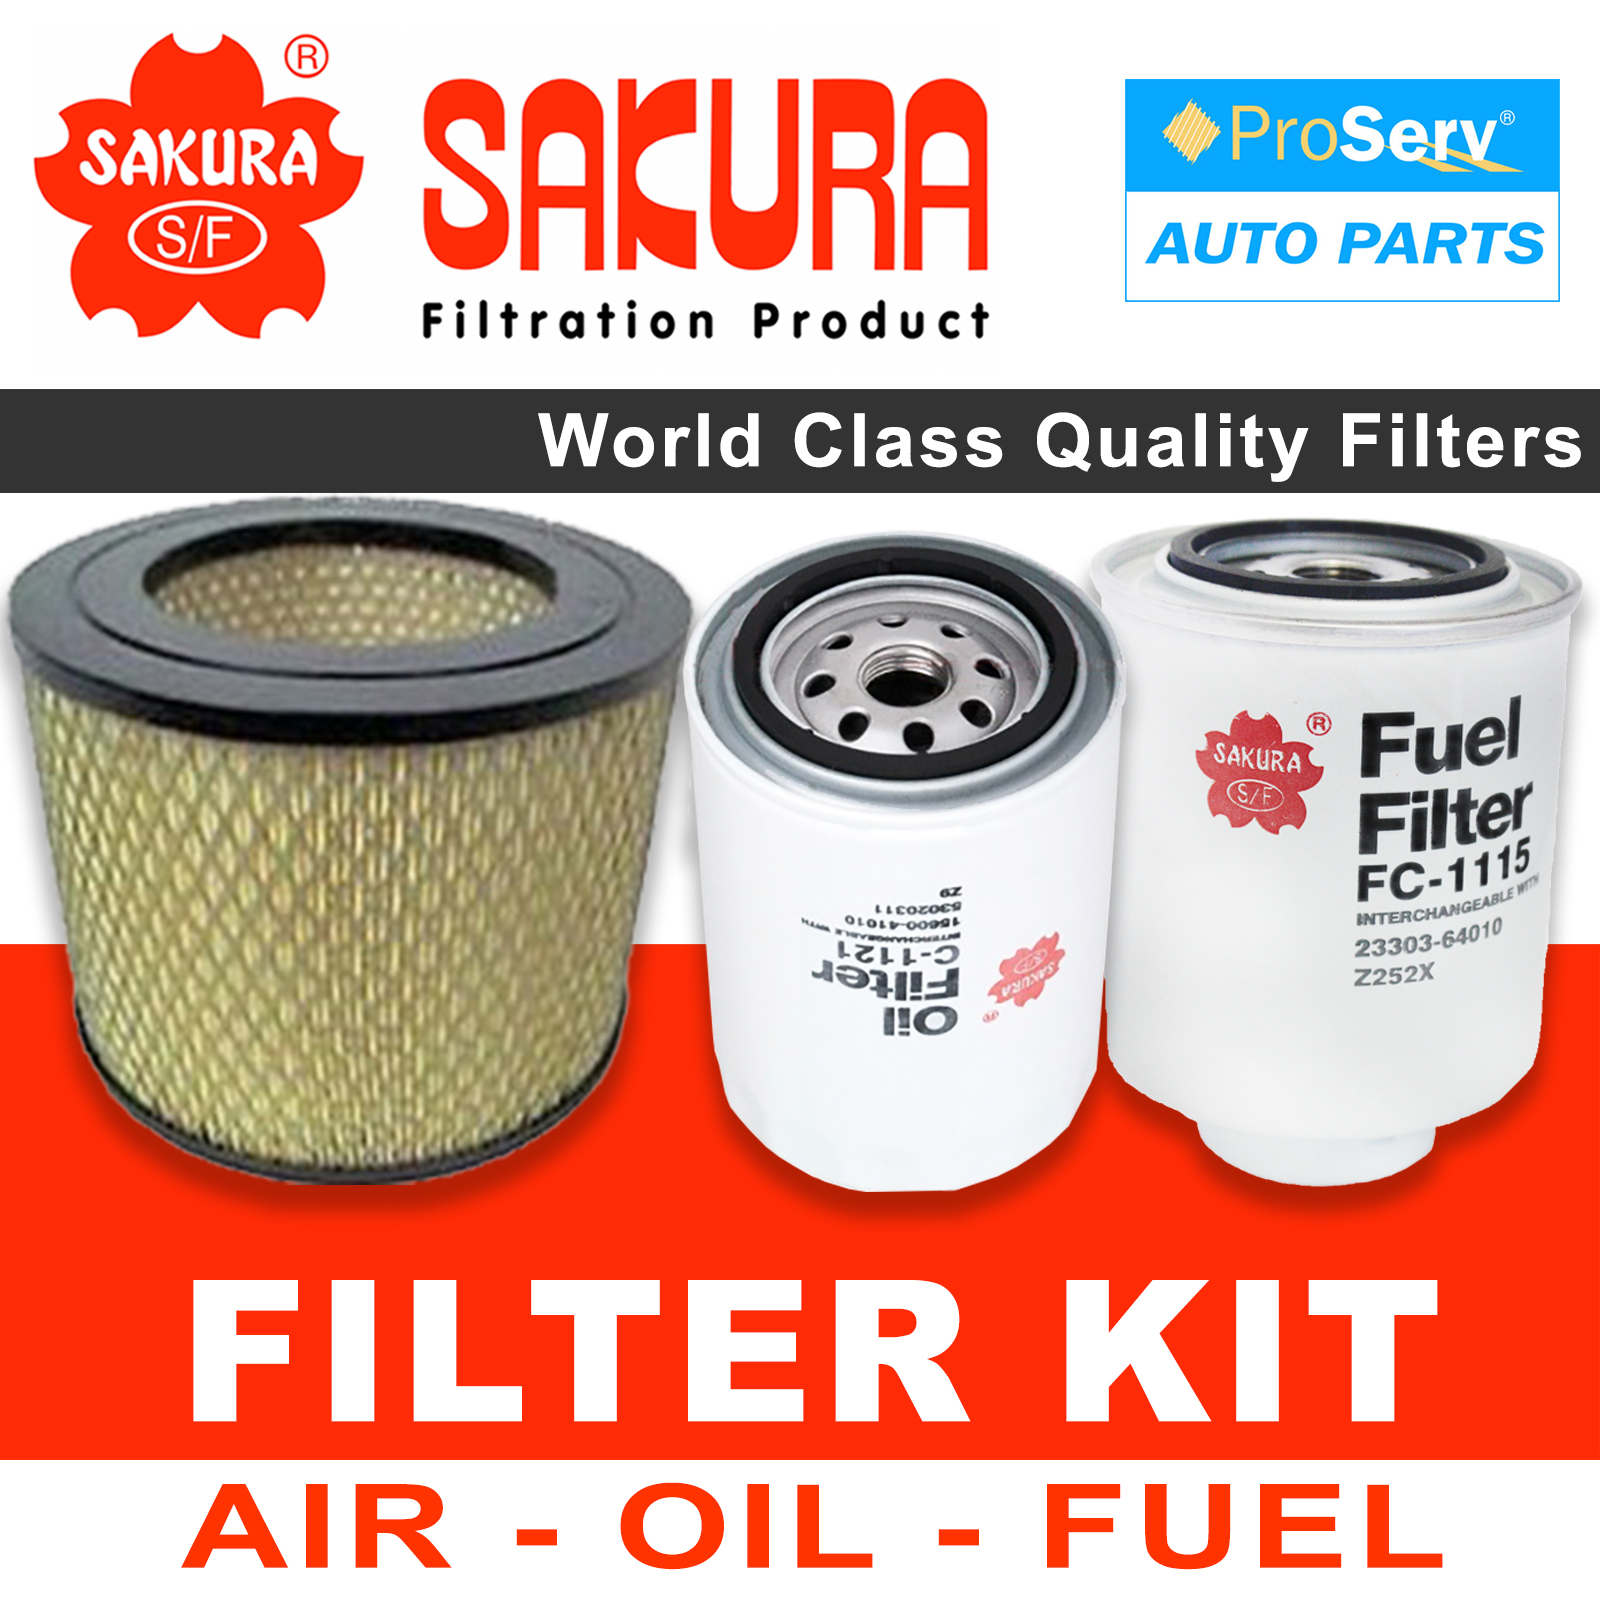 Filters 2006 Corolla Fuel Filter Oil Air Service Kit For Toyota Hilux Surf Kzn130 1kzte 1993